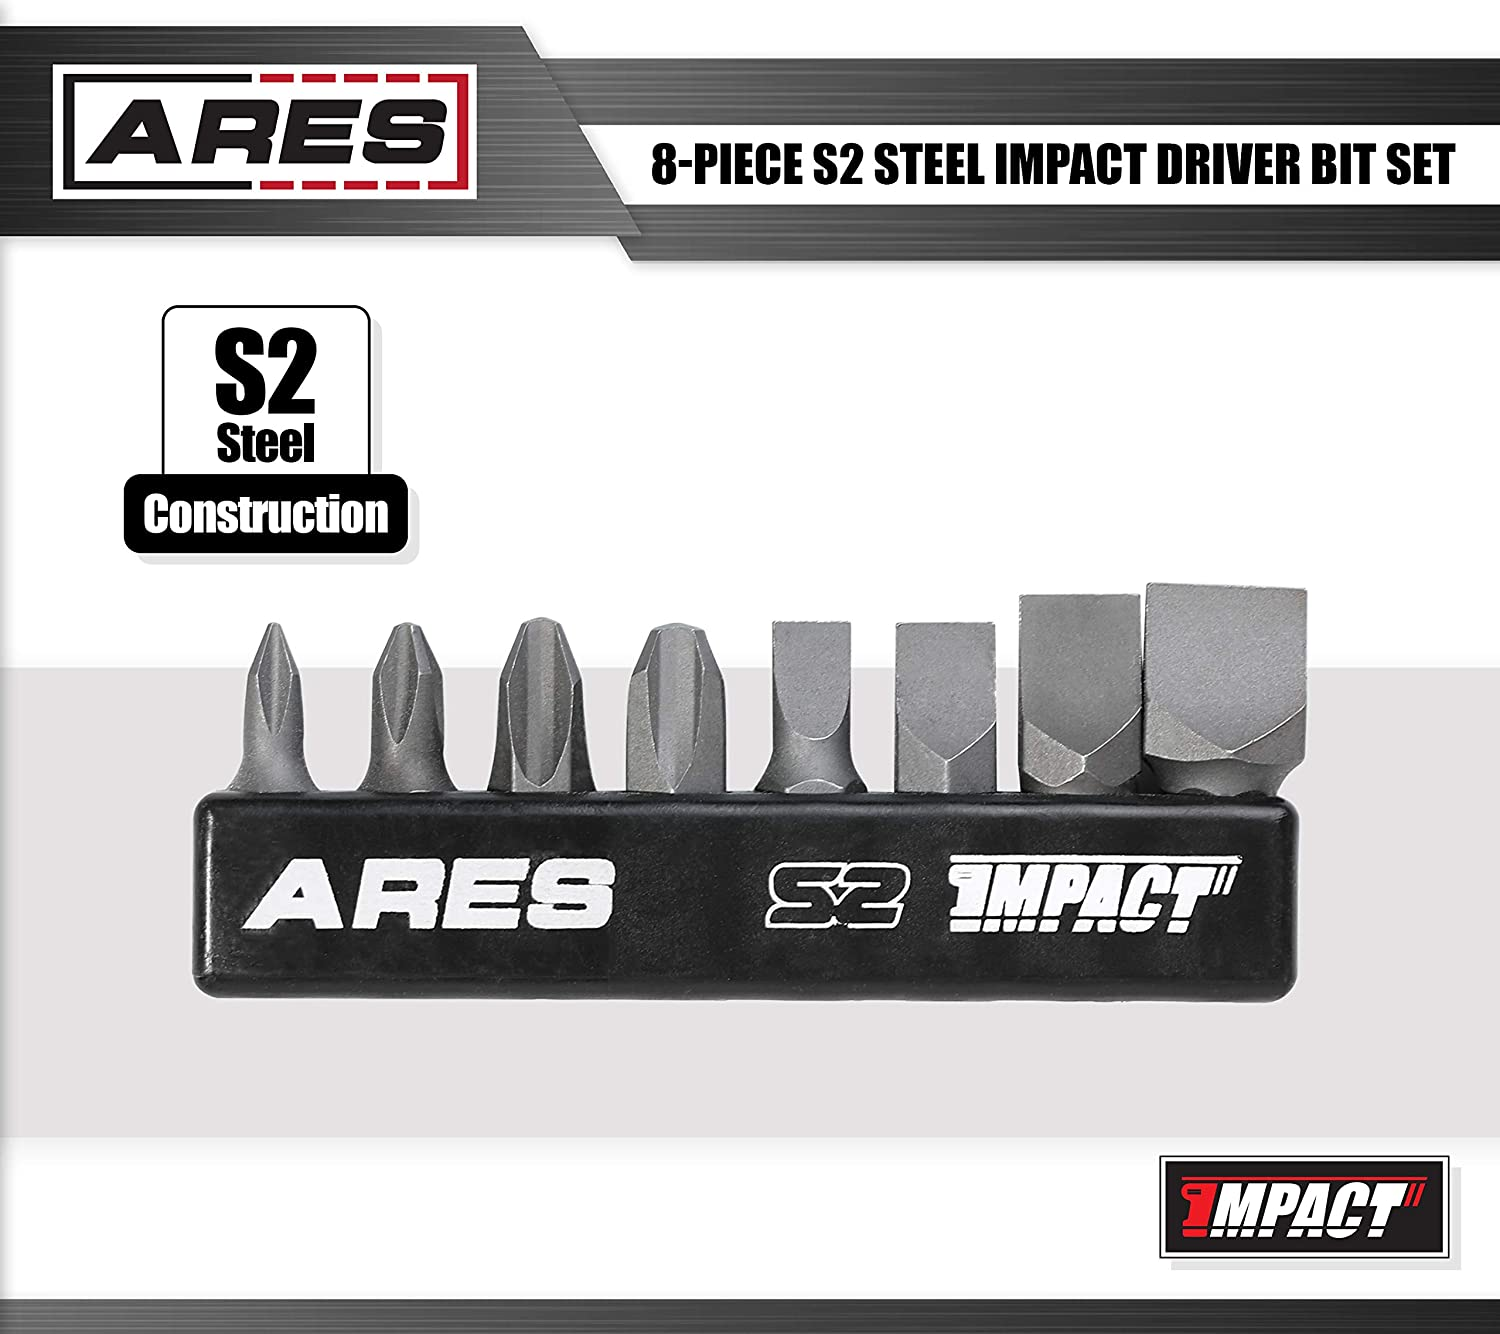 3//8 and 1//2-inch 5//16 Includes Philips 1,2,3,4 and Slotted 1//4 ARES 70013 High Alloy S2 Steel Construction 8-Piece S2 Steel Impact Driver Bit Set